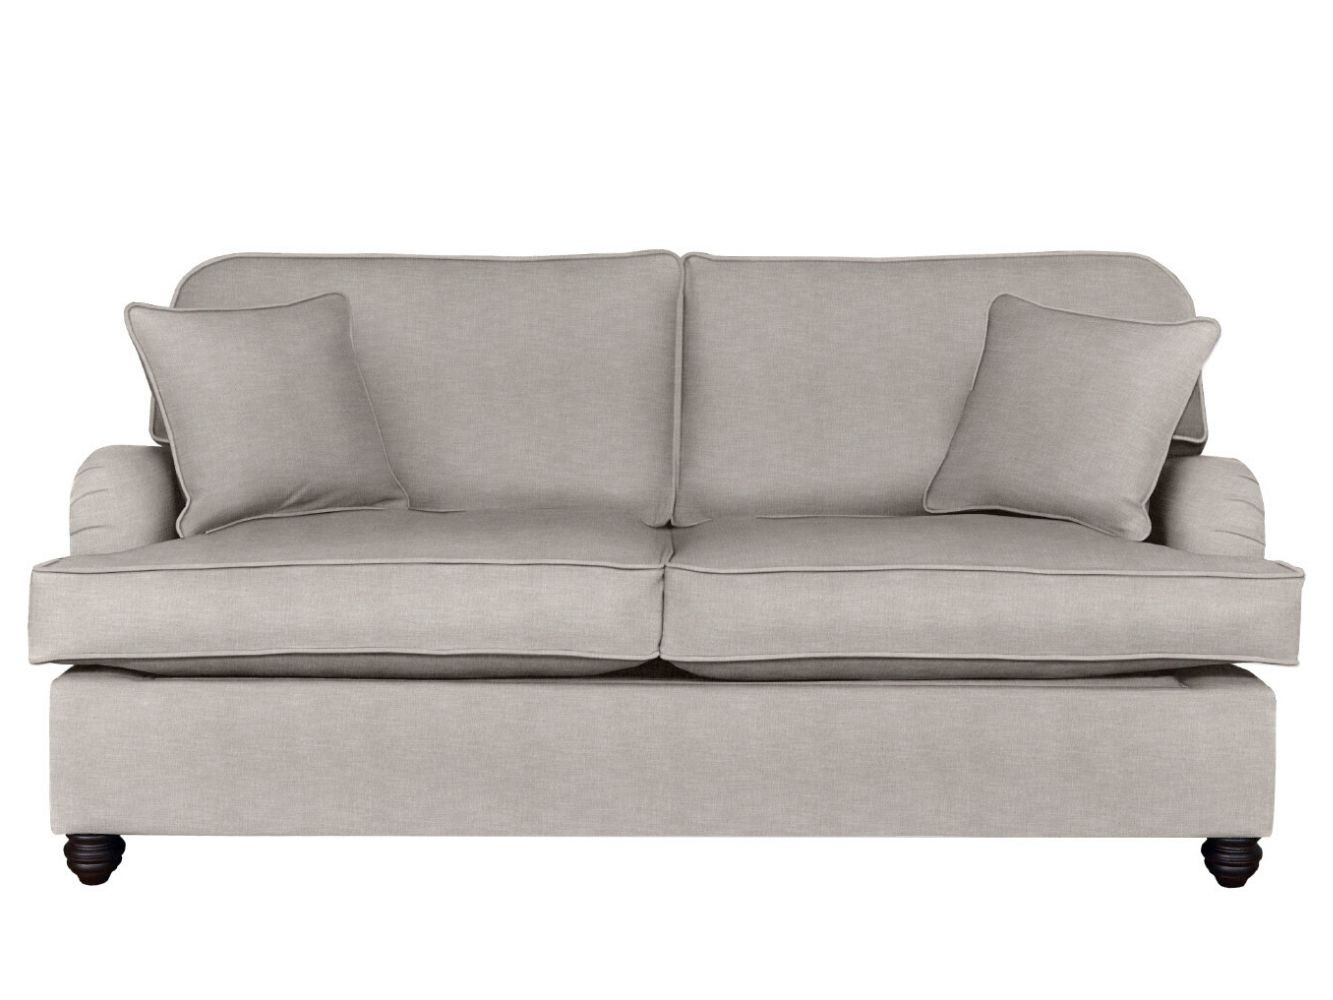 This is how I look in Stain Resistant Cotton Lavender Grey (Discontinued Fabric) with siliconized hollow fibre seat cushions